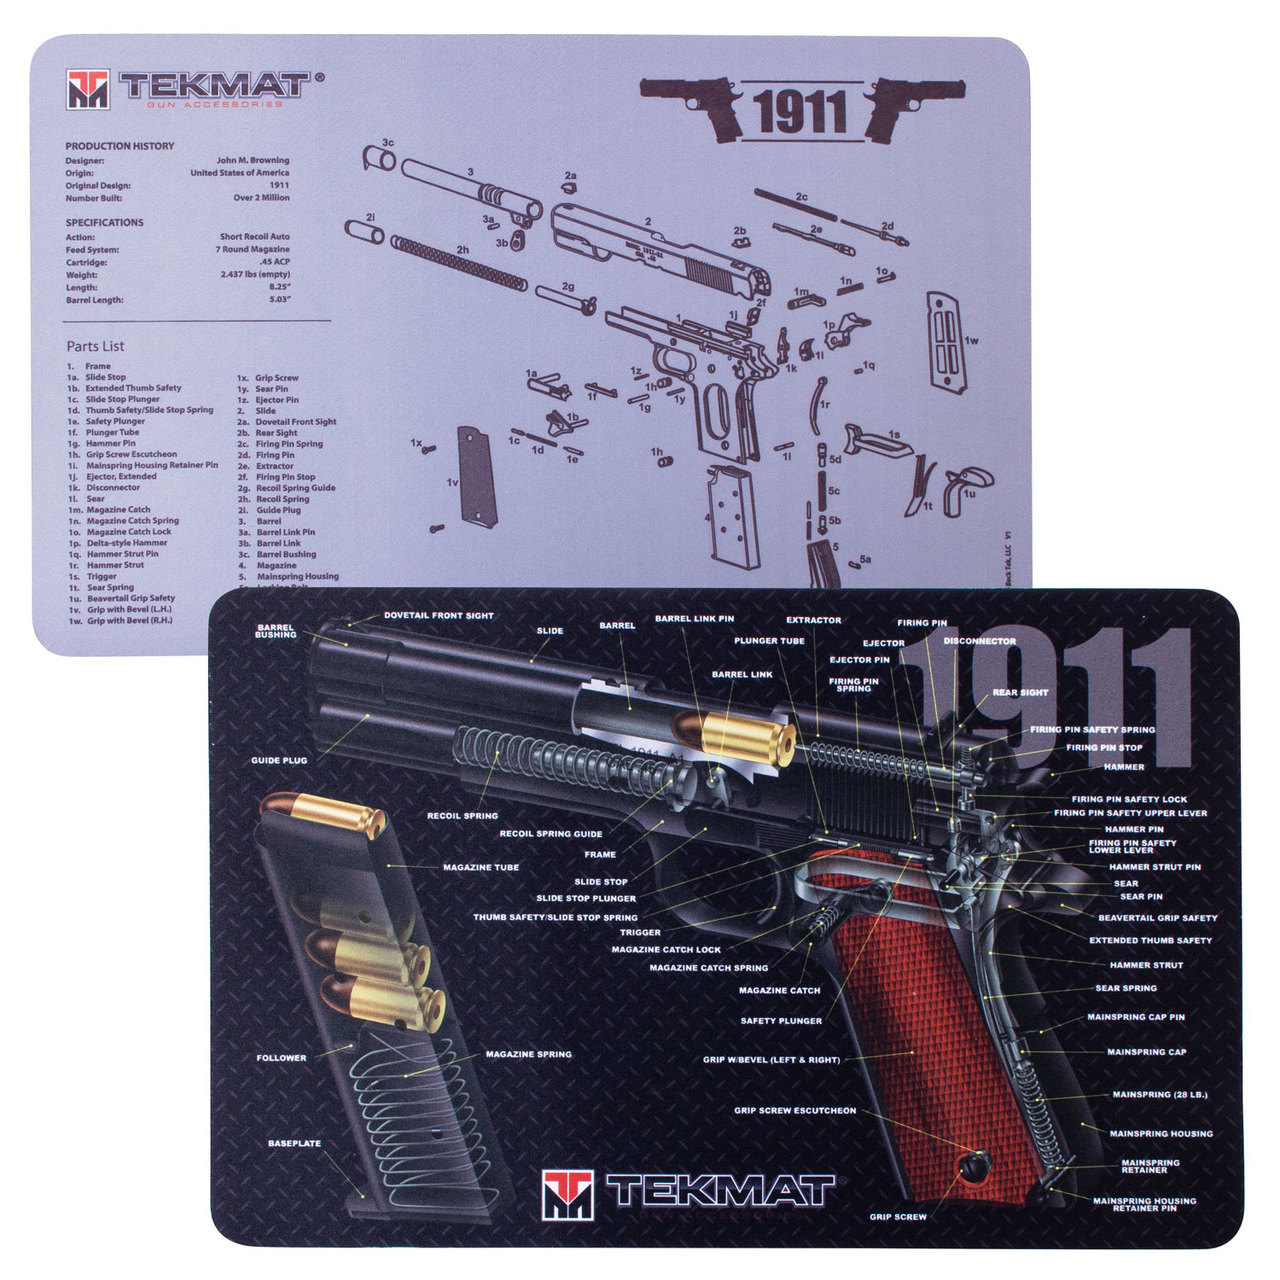 Tekmat Handgun Gunmats Ruger Lcp Extractor Exploded View Diagram 1911 Double Sided